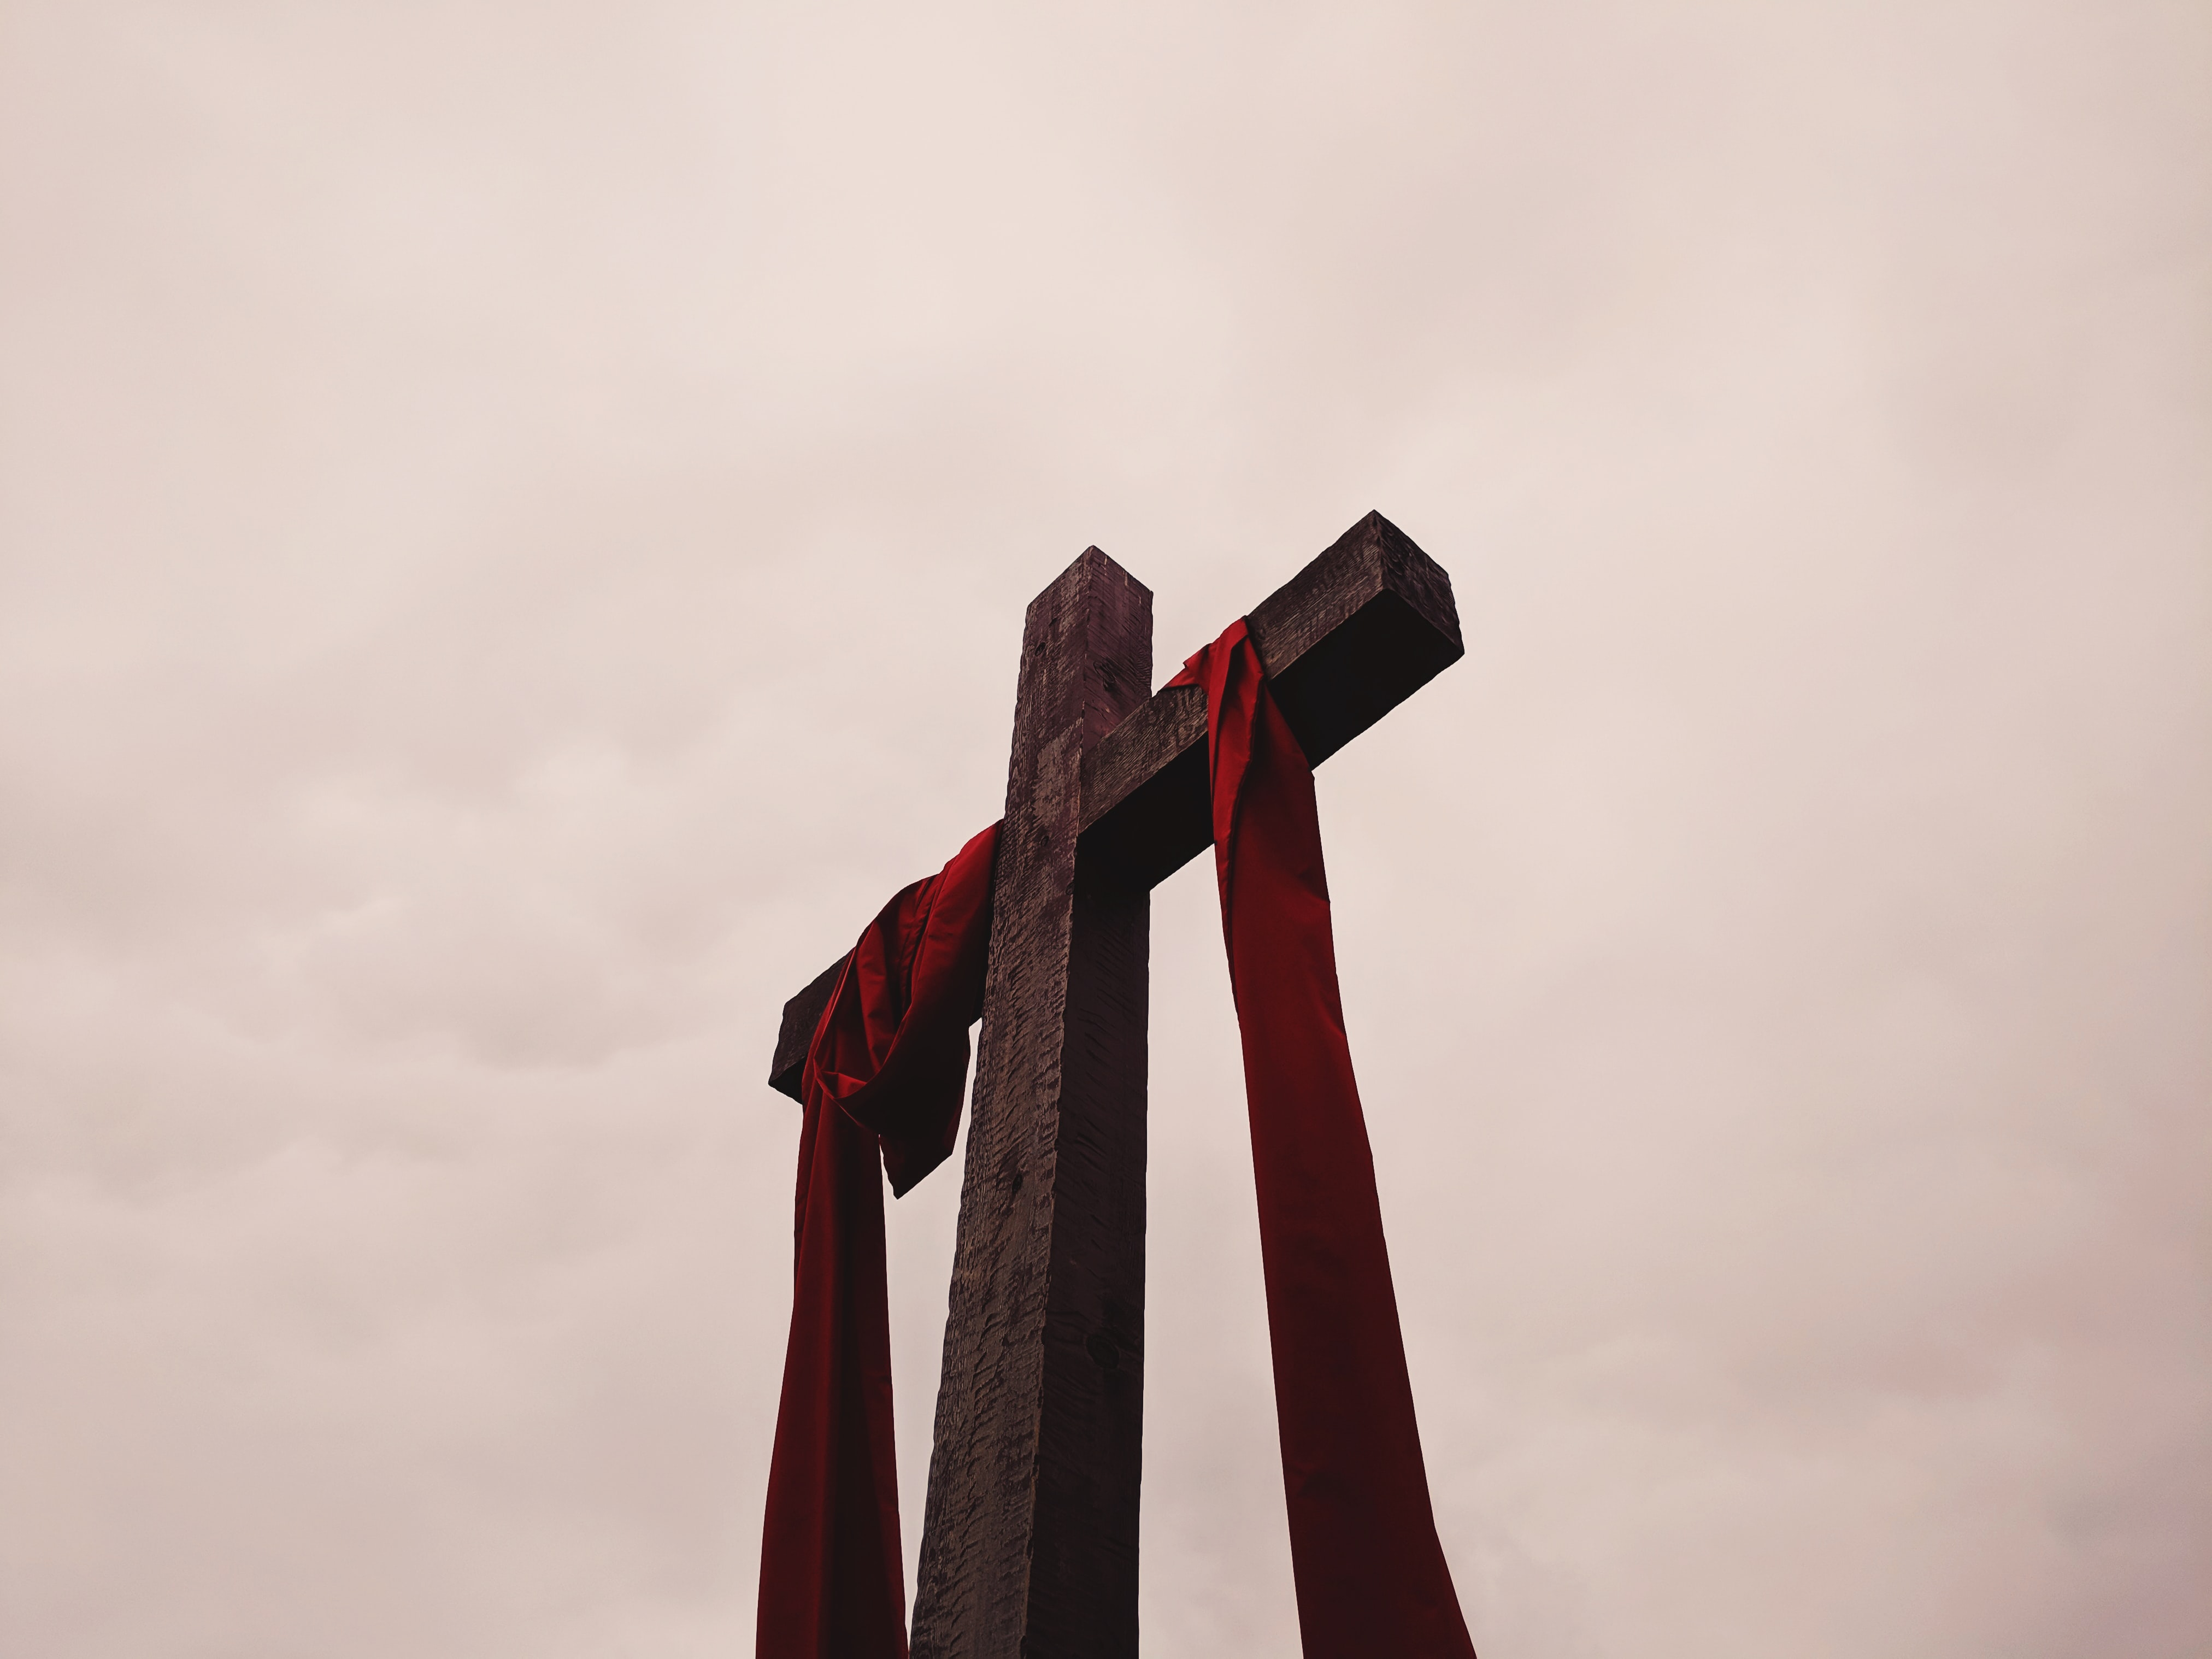 About Good Friday